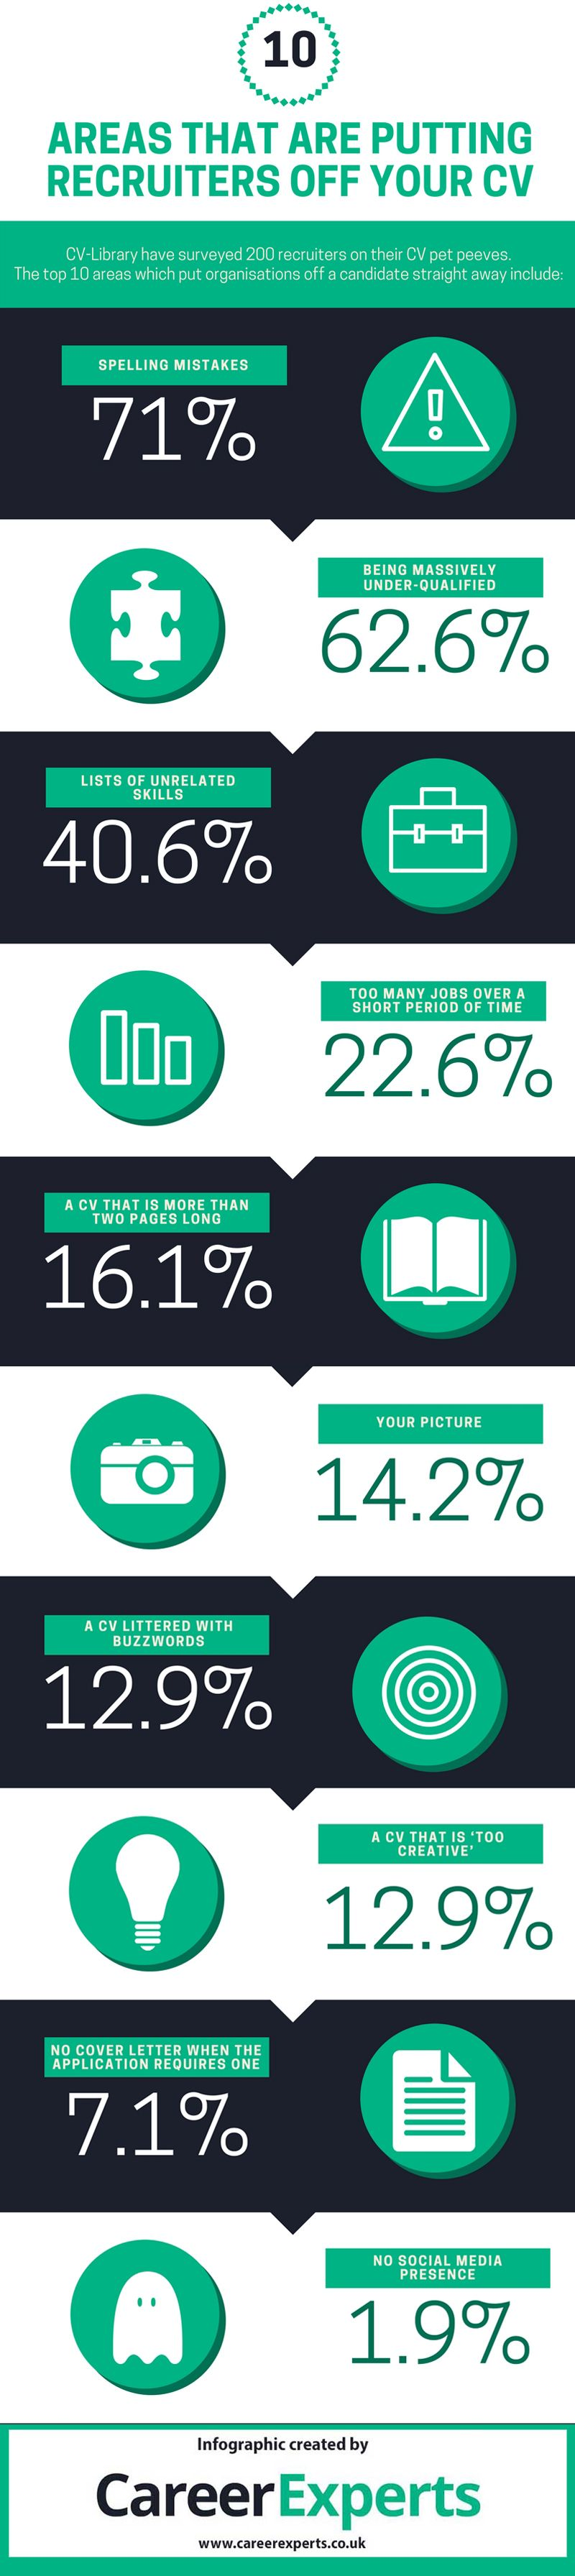 CV-Library have surveyed over 200 recruiters to find out what their ...